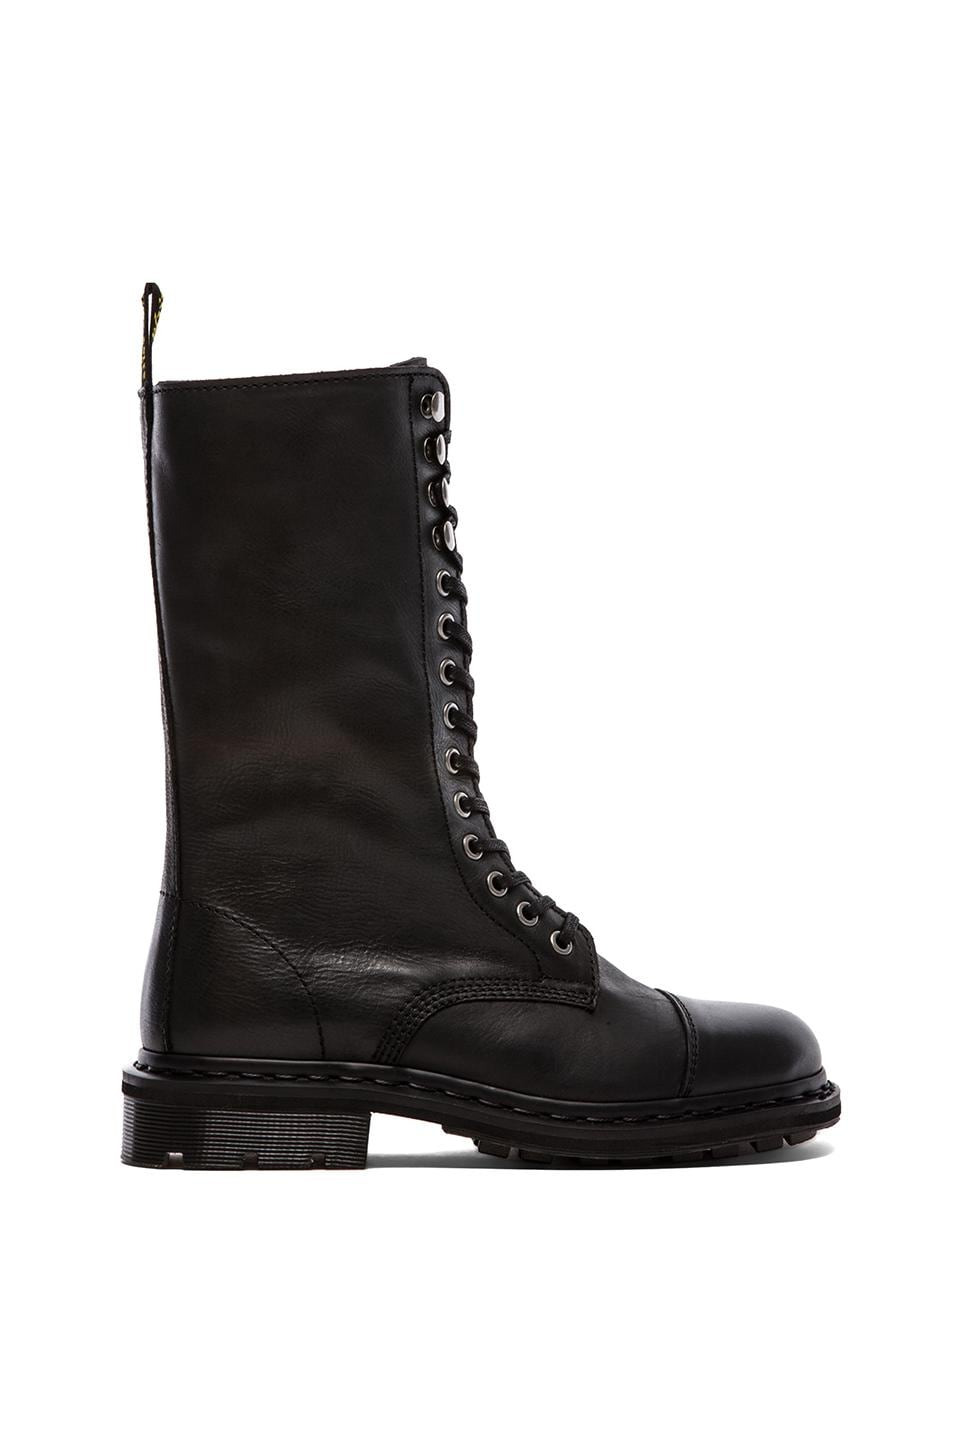 Dr. Martens Bridge 14-Eye Fold Down Boot in Black